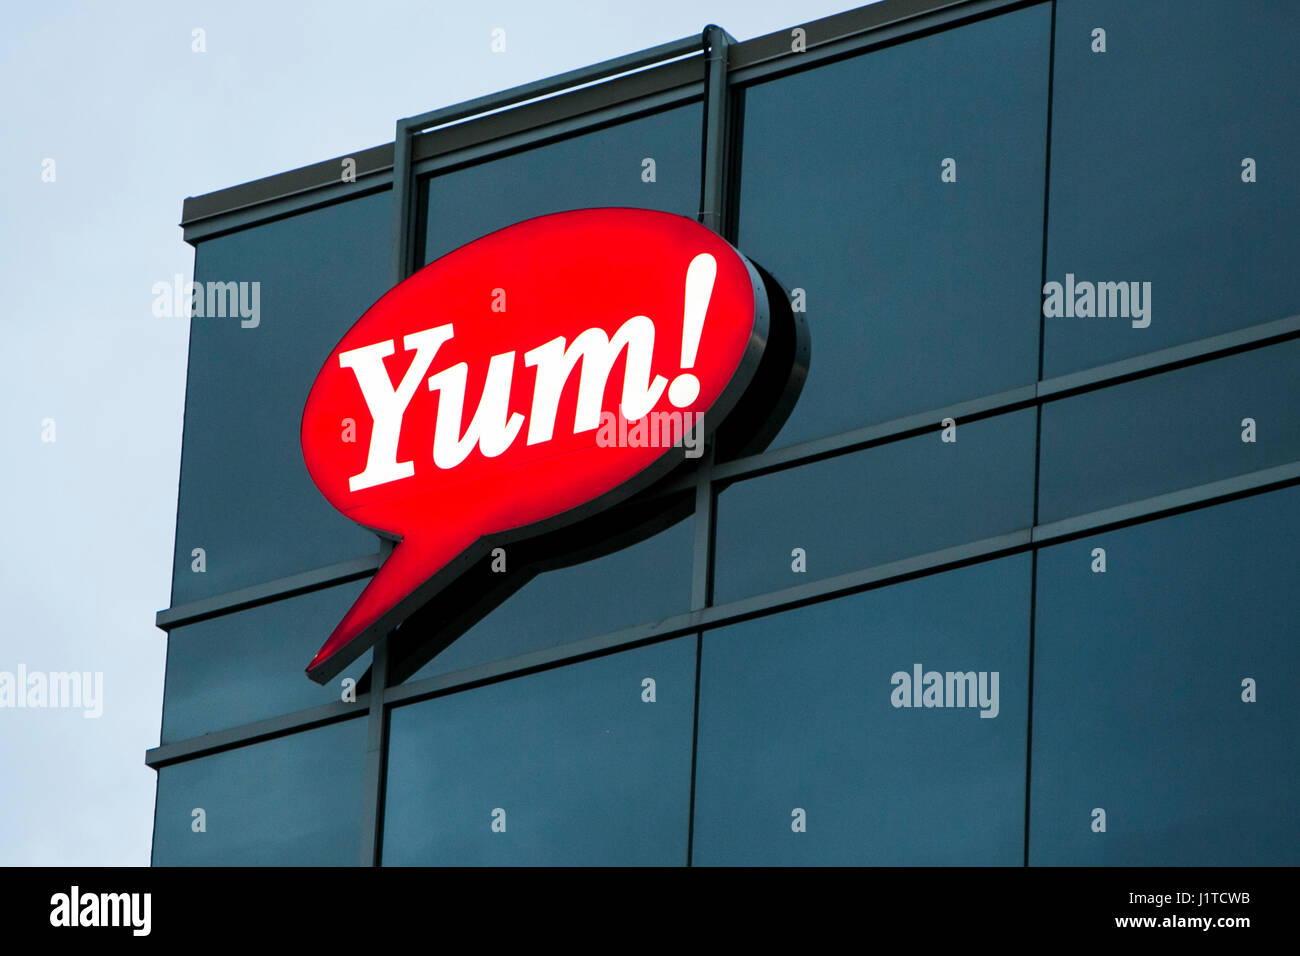 A logo sign outside of a facility occupied by Yum! Brands, Inc., in Vaughan, Ontario, Canada, on April 16, 2017. - Stock Image